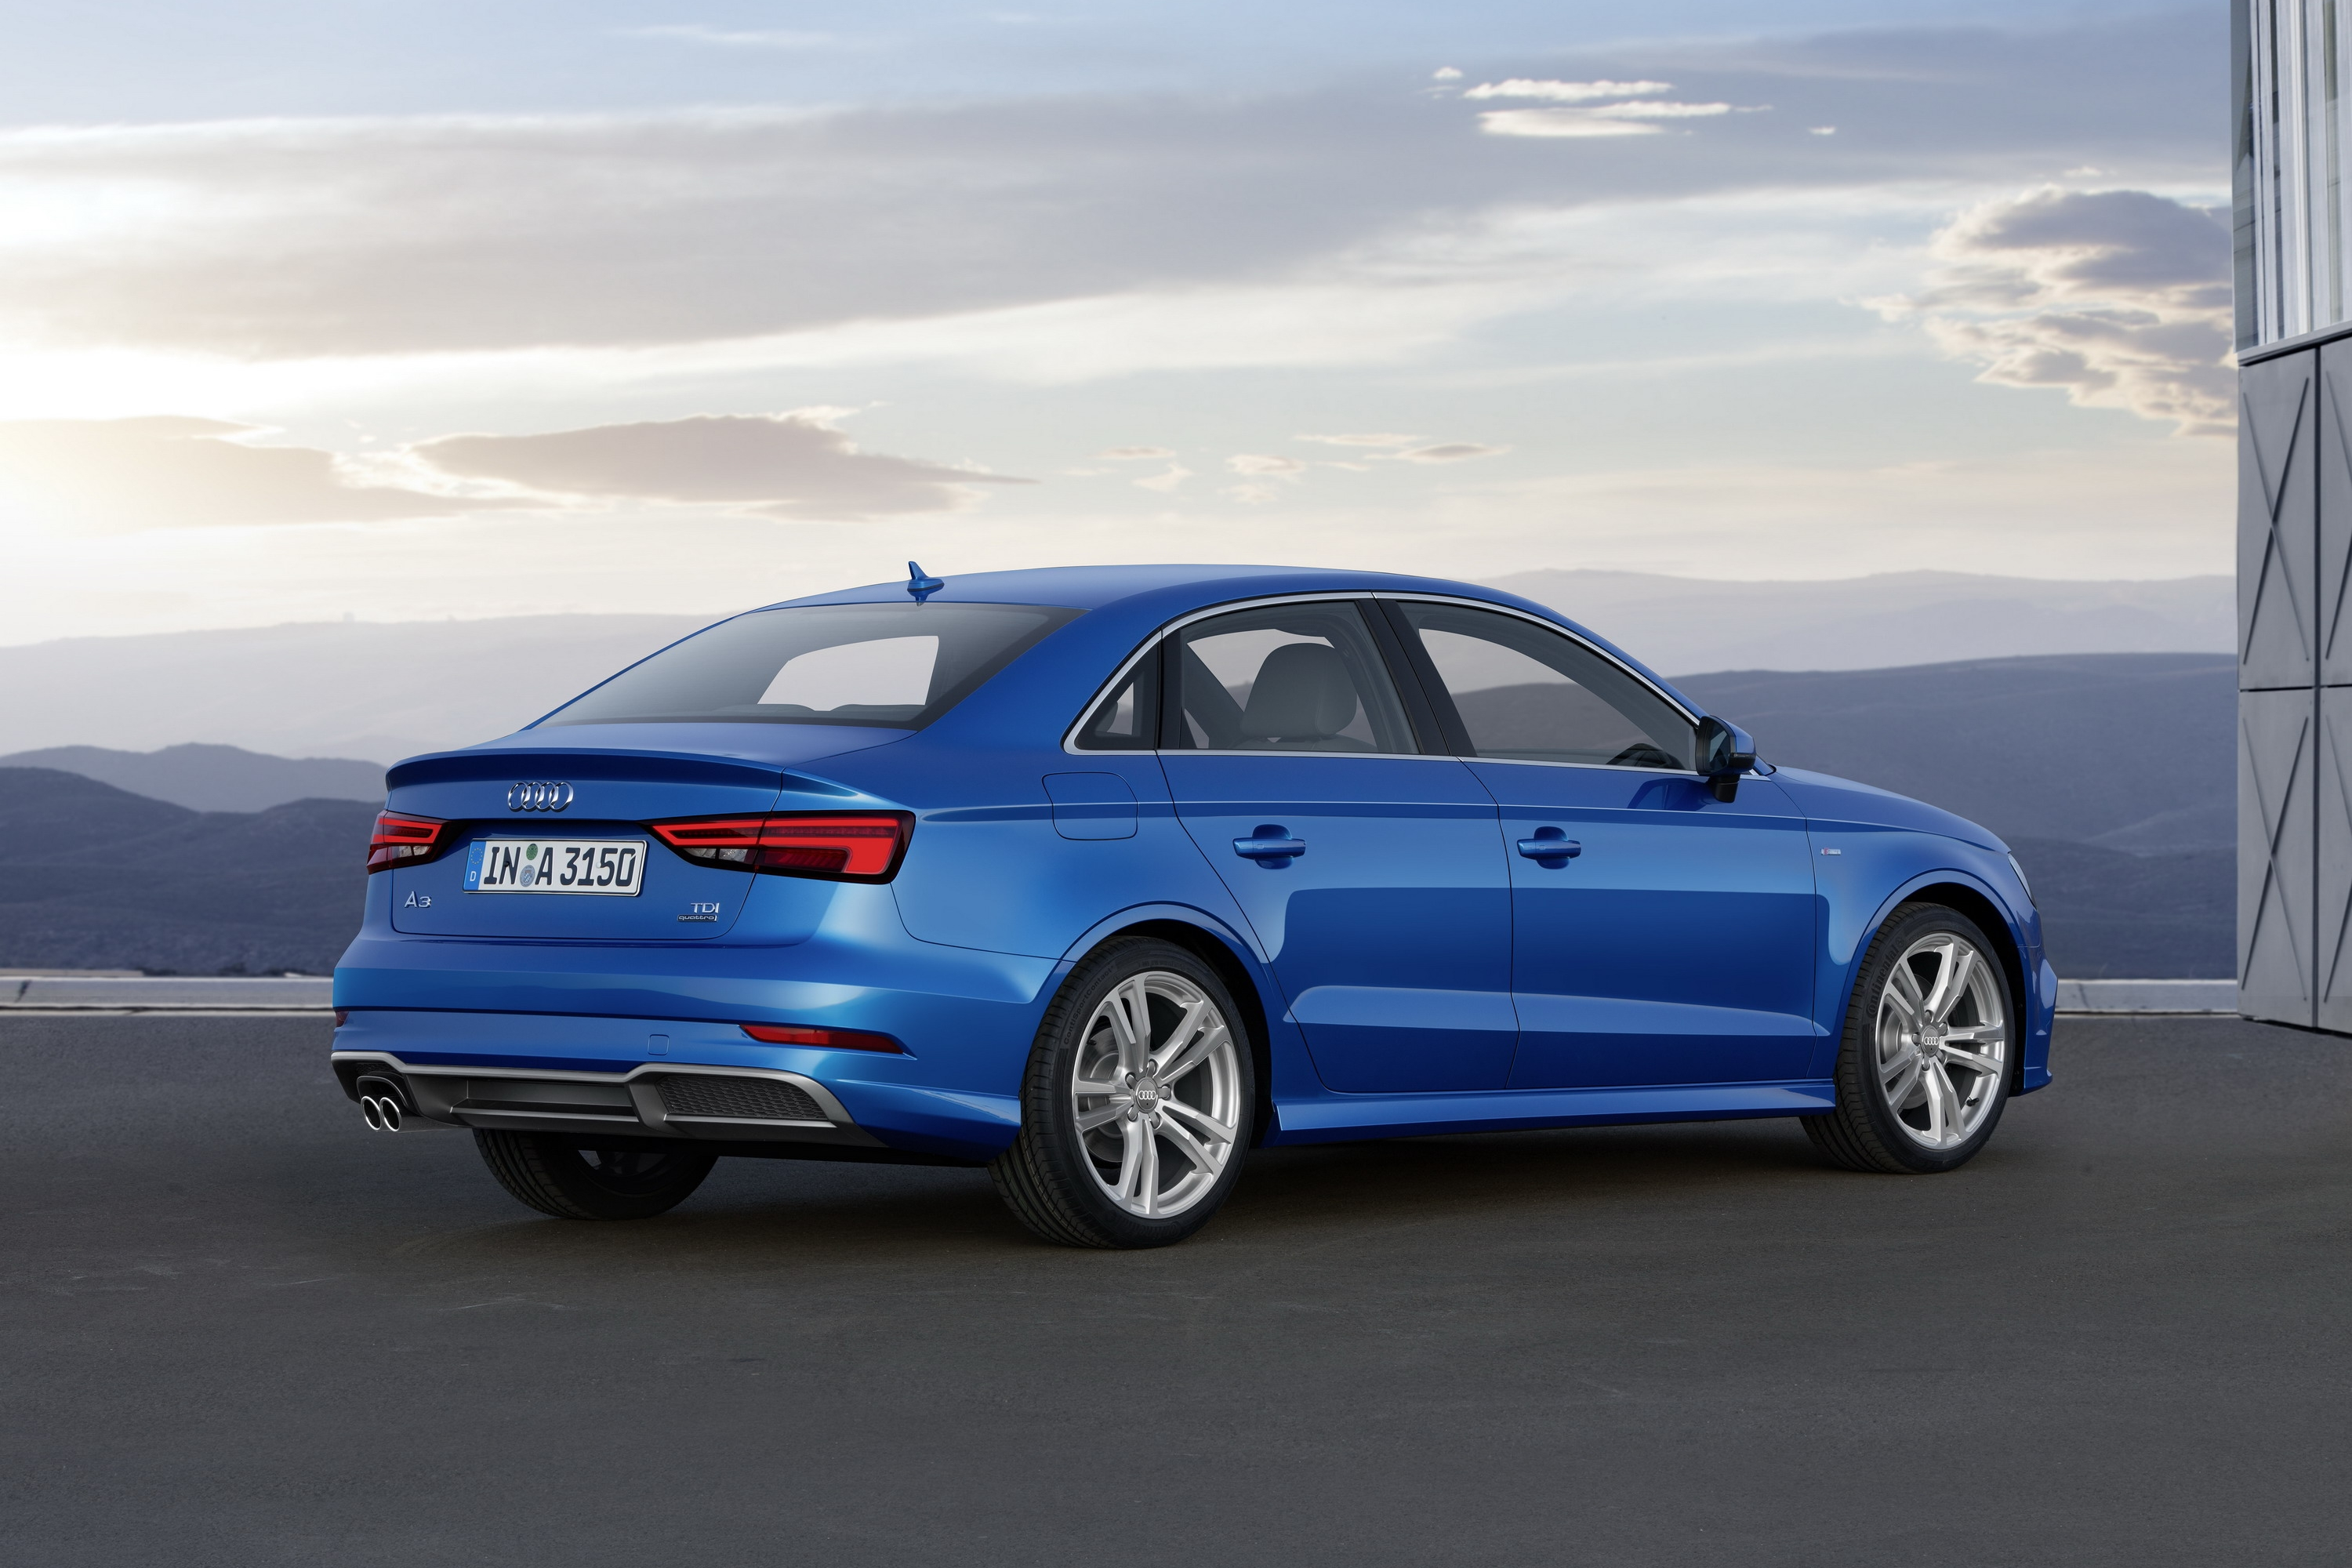 model web models shown ca canada audi european large sedan en